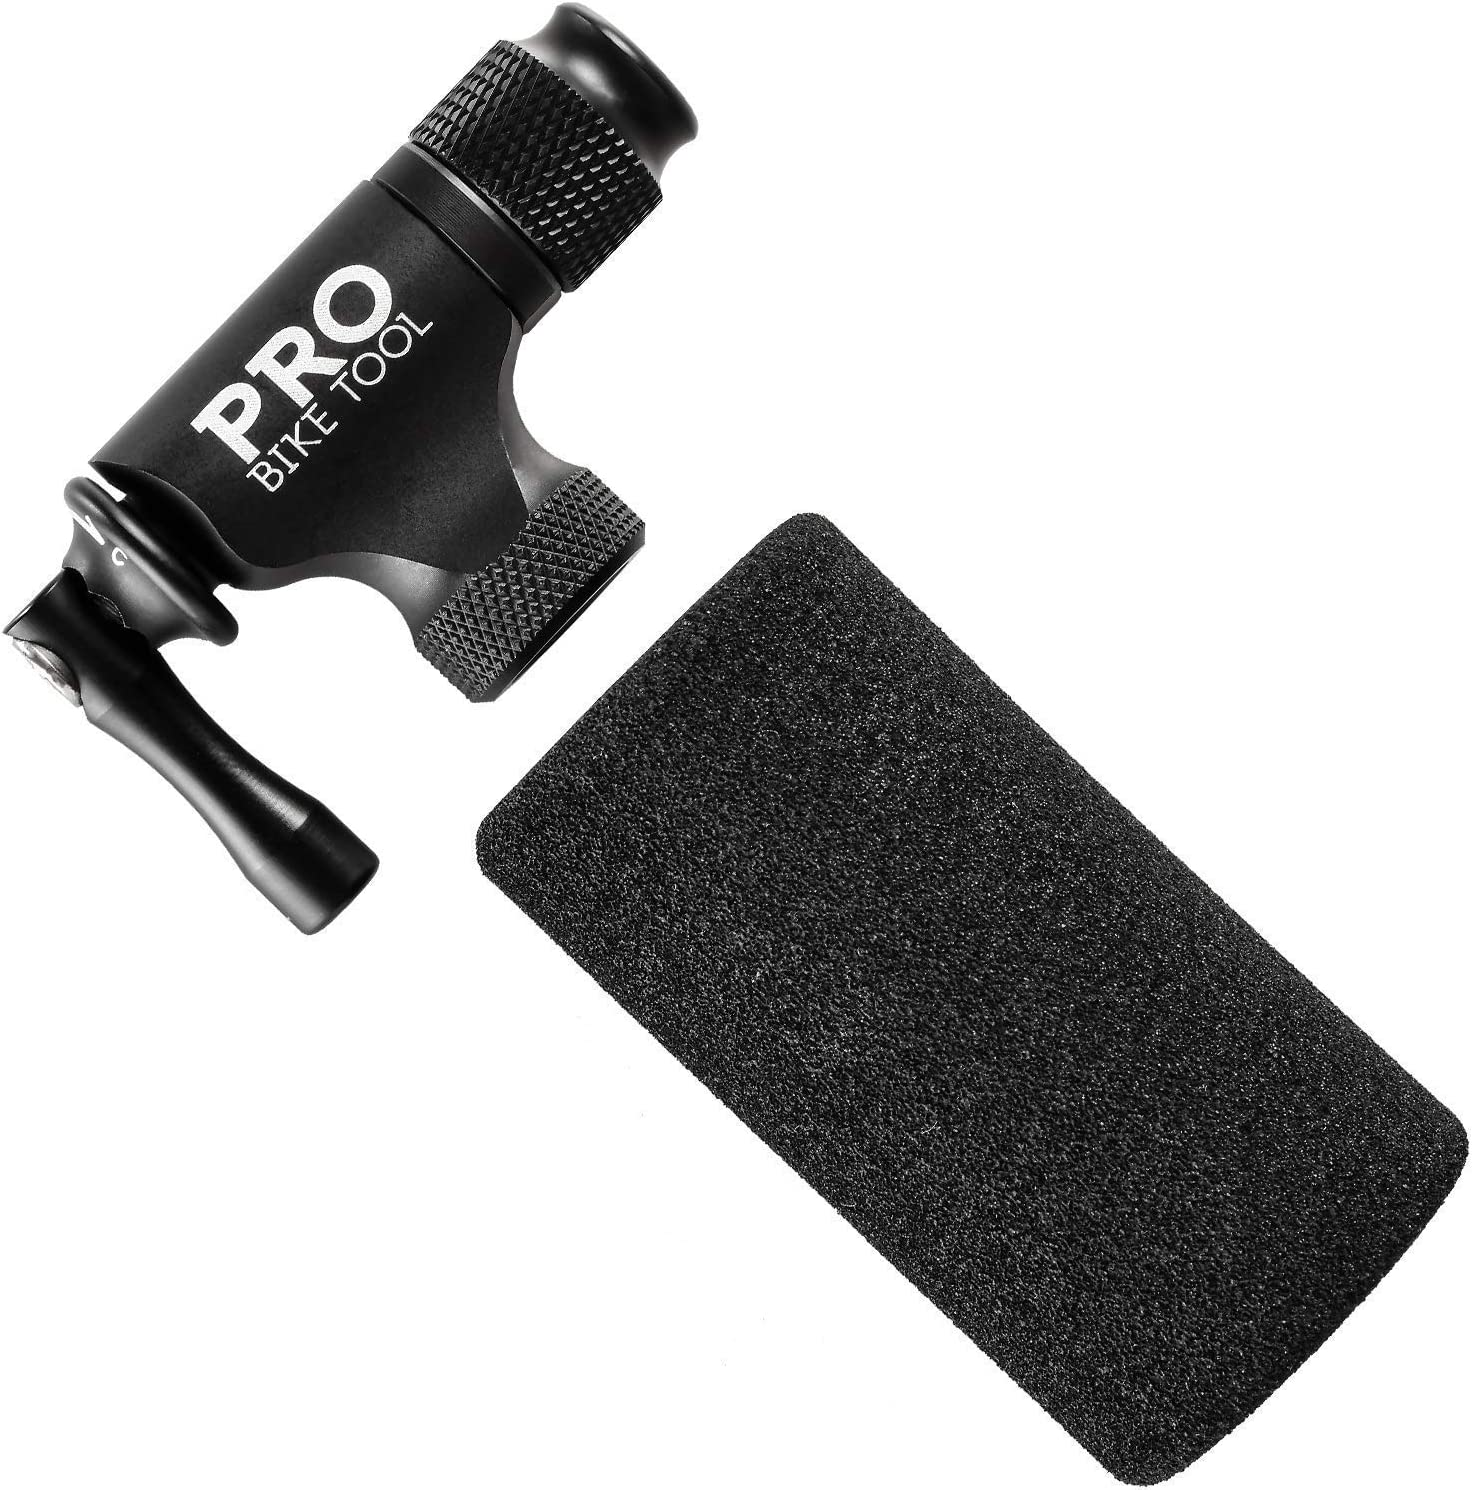 PRO BIKE TOOL CO2 Inflator for Road and Mountain Bikes 17 in 1 Bicycle Multitool